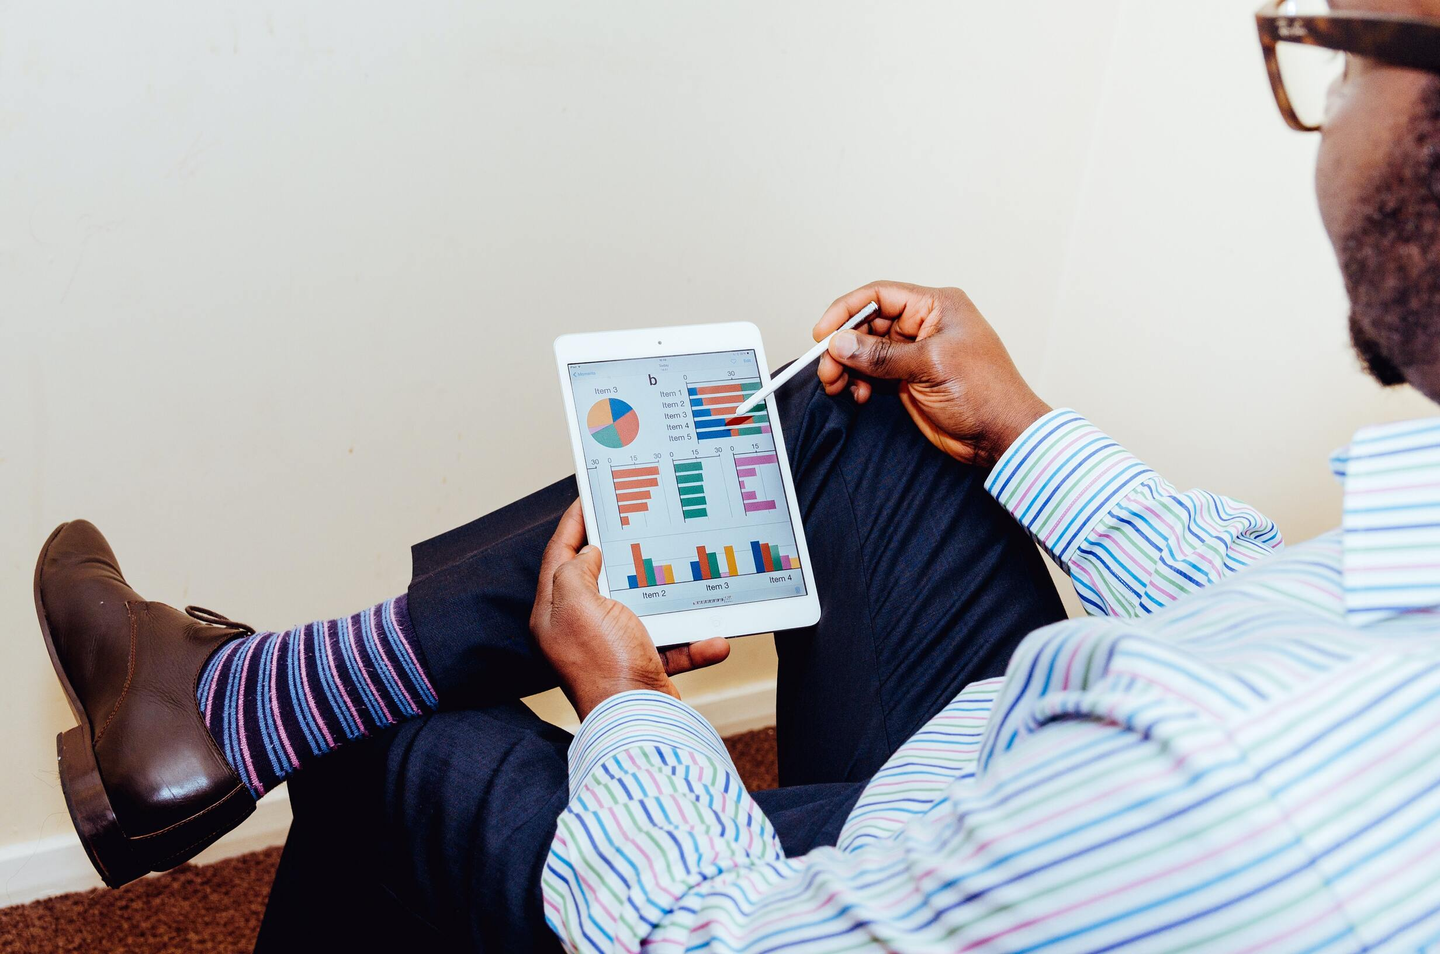 Man looking at financial analytics on a tablet